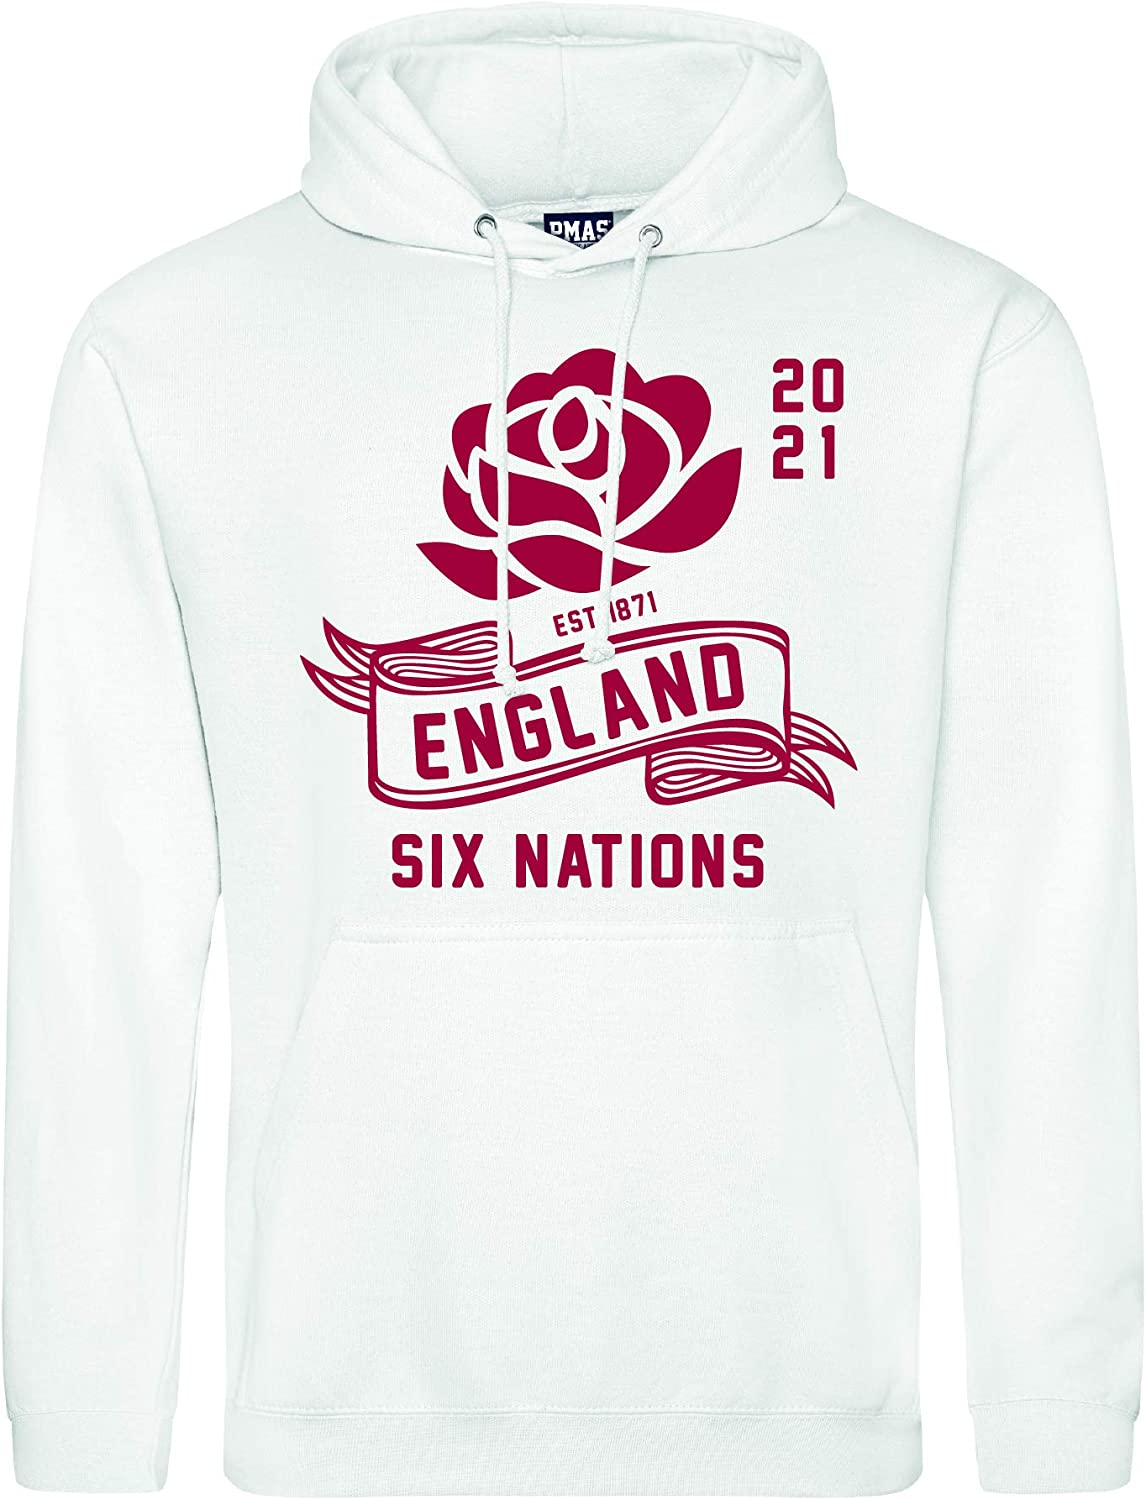 SIX NATIONS RUGBY TOURNAMENT MENS SPORTS COMPETITION SWEATSHIRT JUMPER